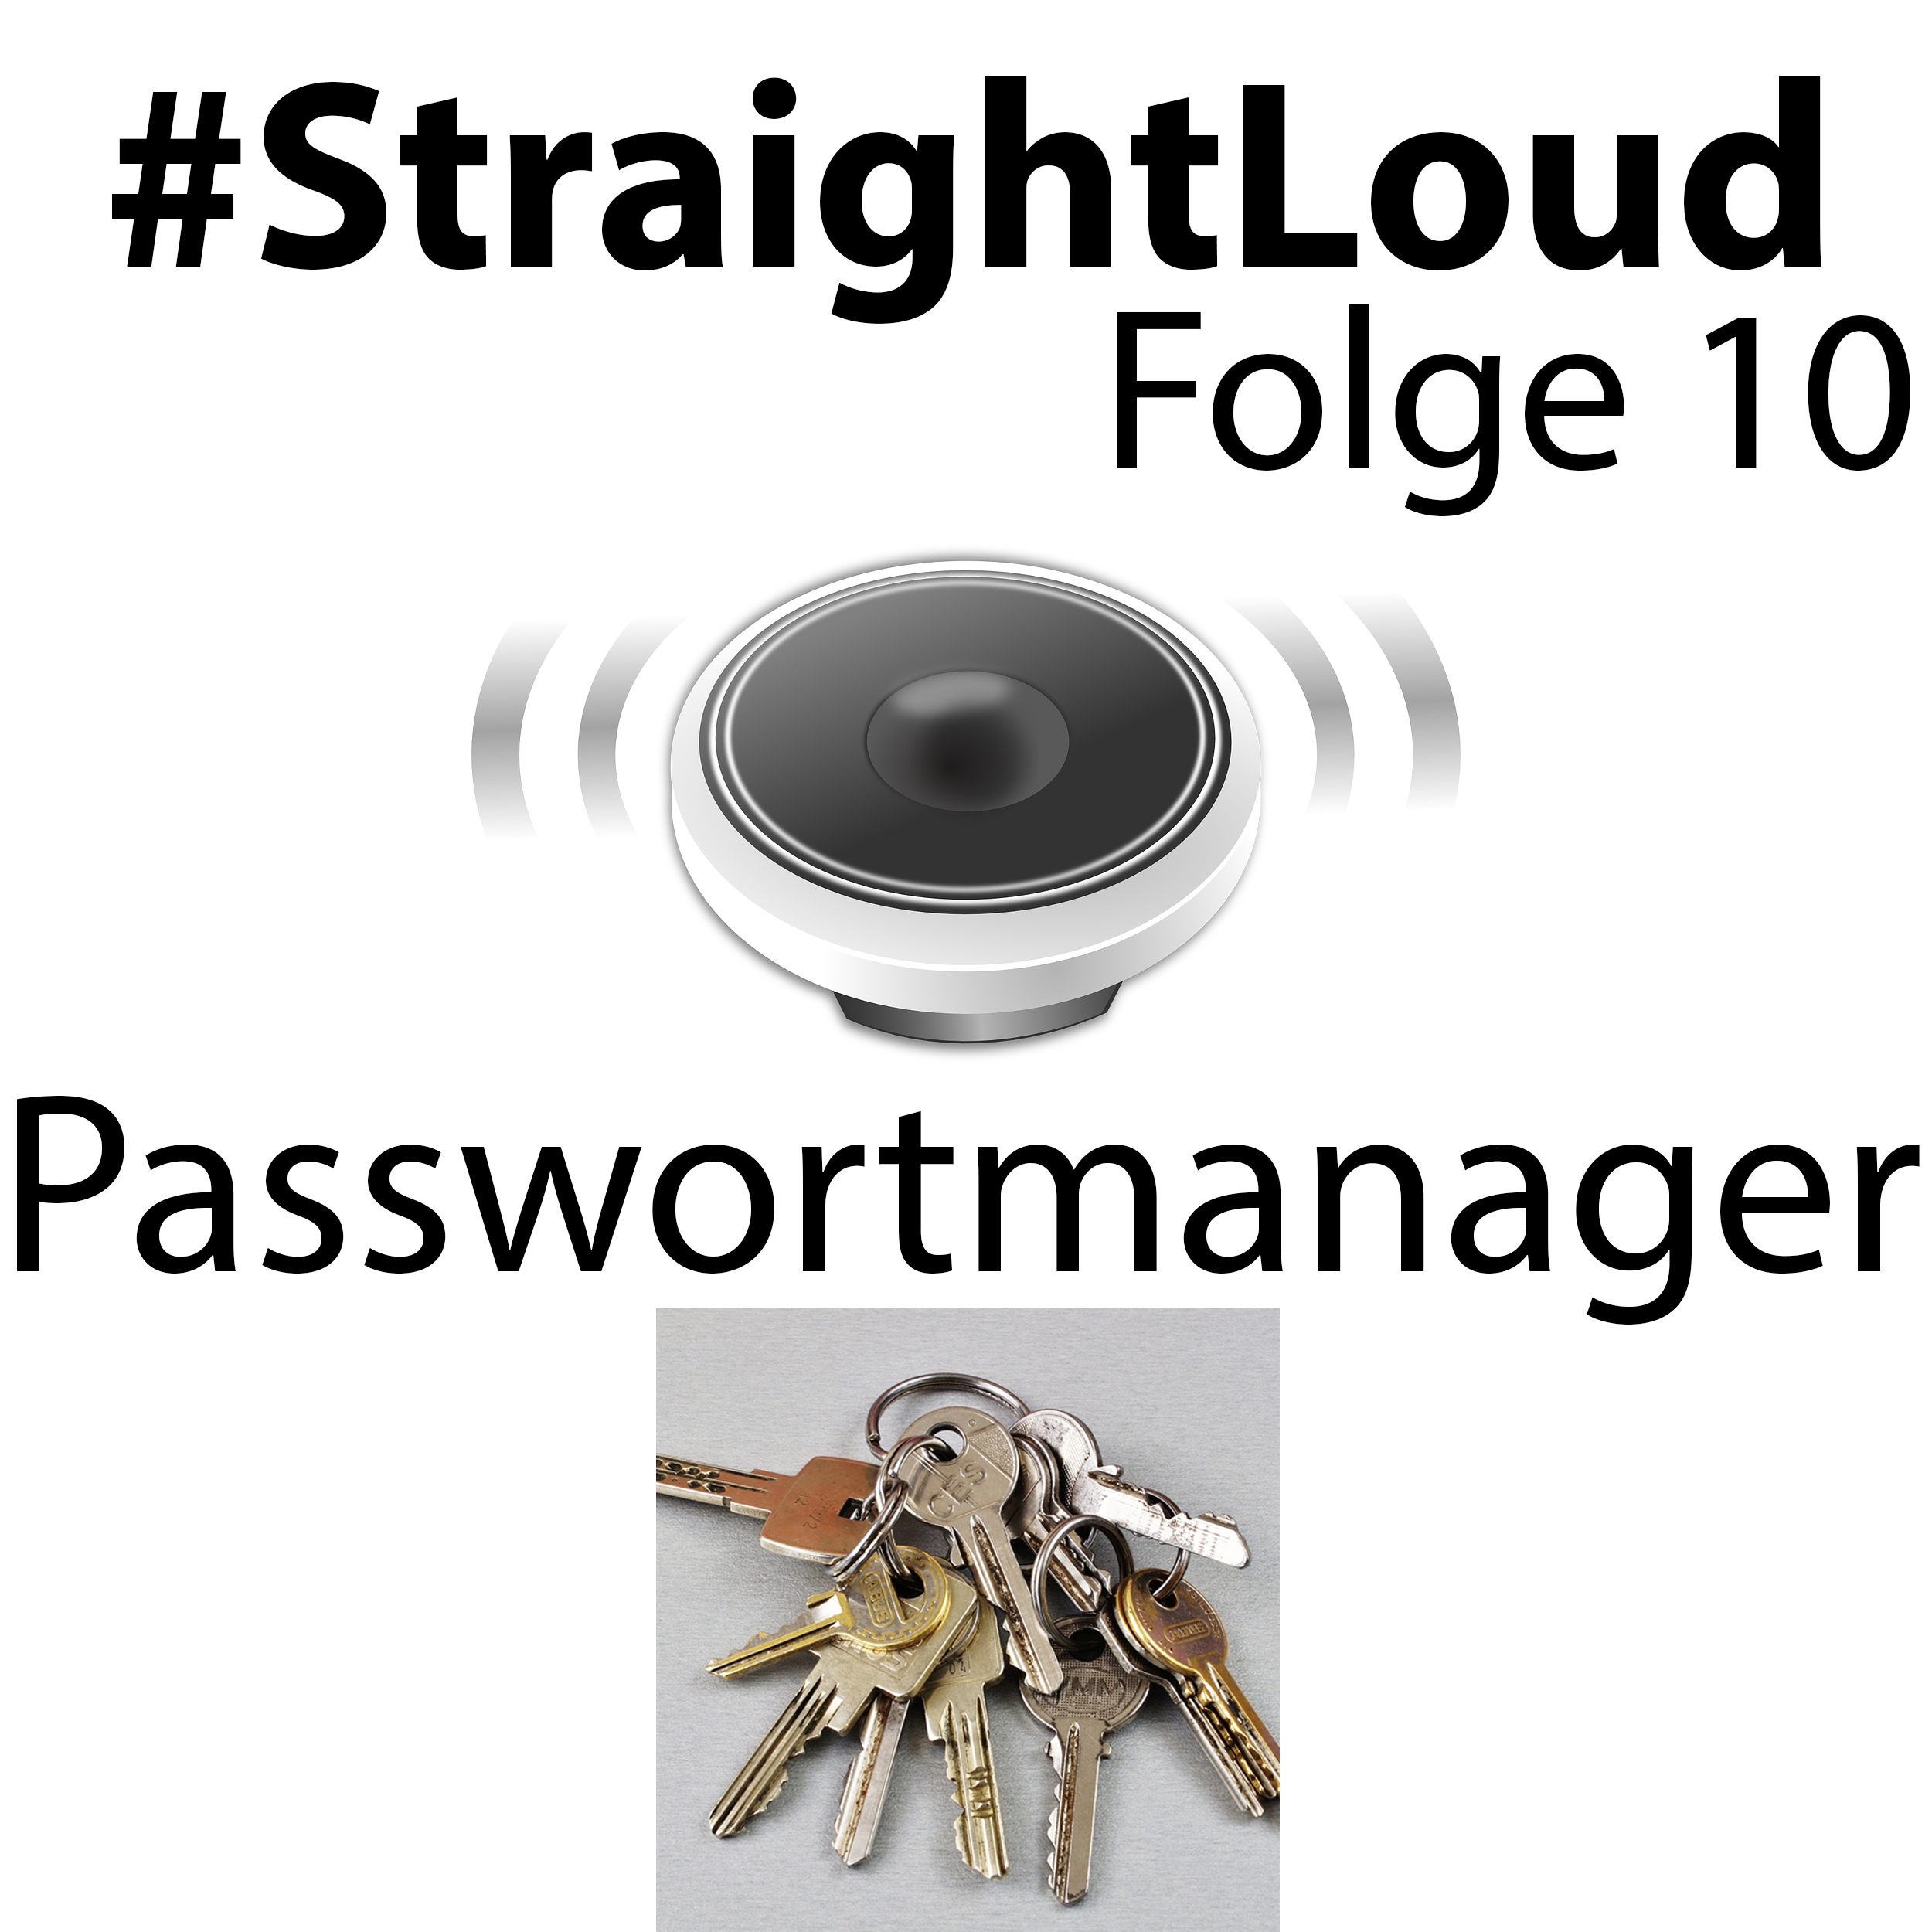 passwortmanager